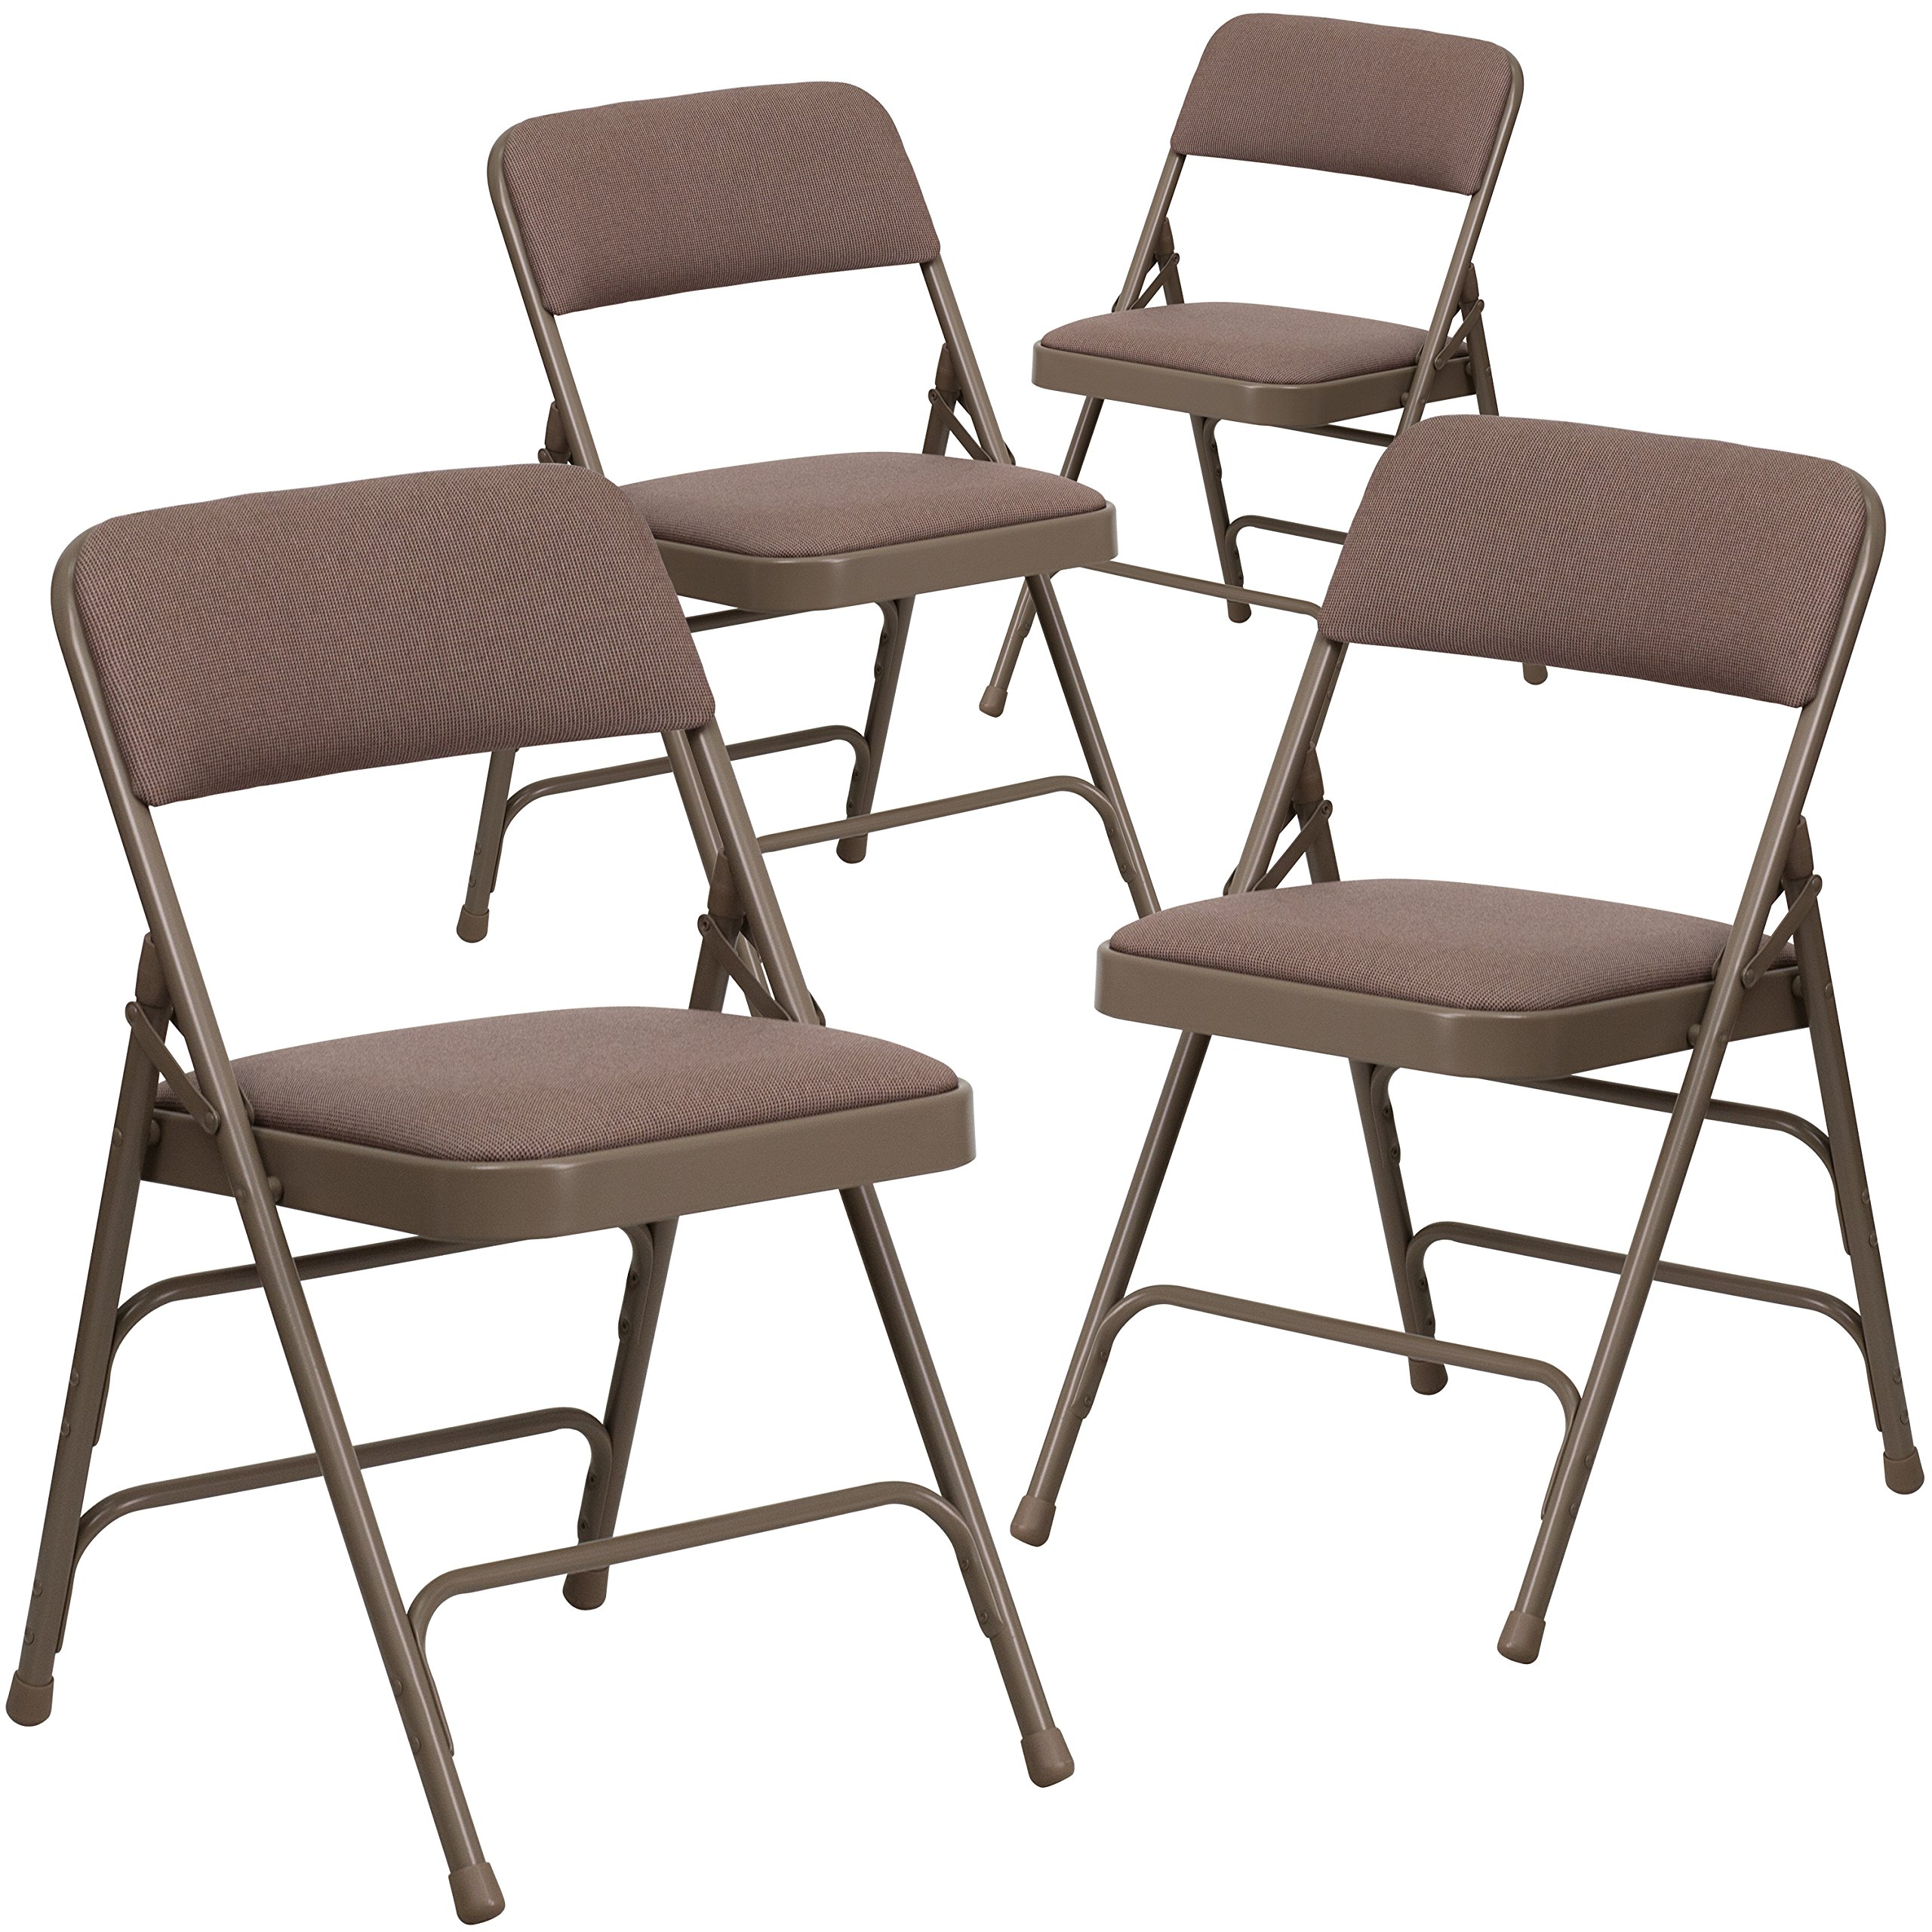 Flash Furniture 4 Pk. HERCULES Series Curved Triple Braced & Double Hinged Beige Fabric Metal Folding Chair by Flash Furniture